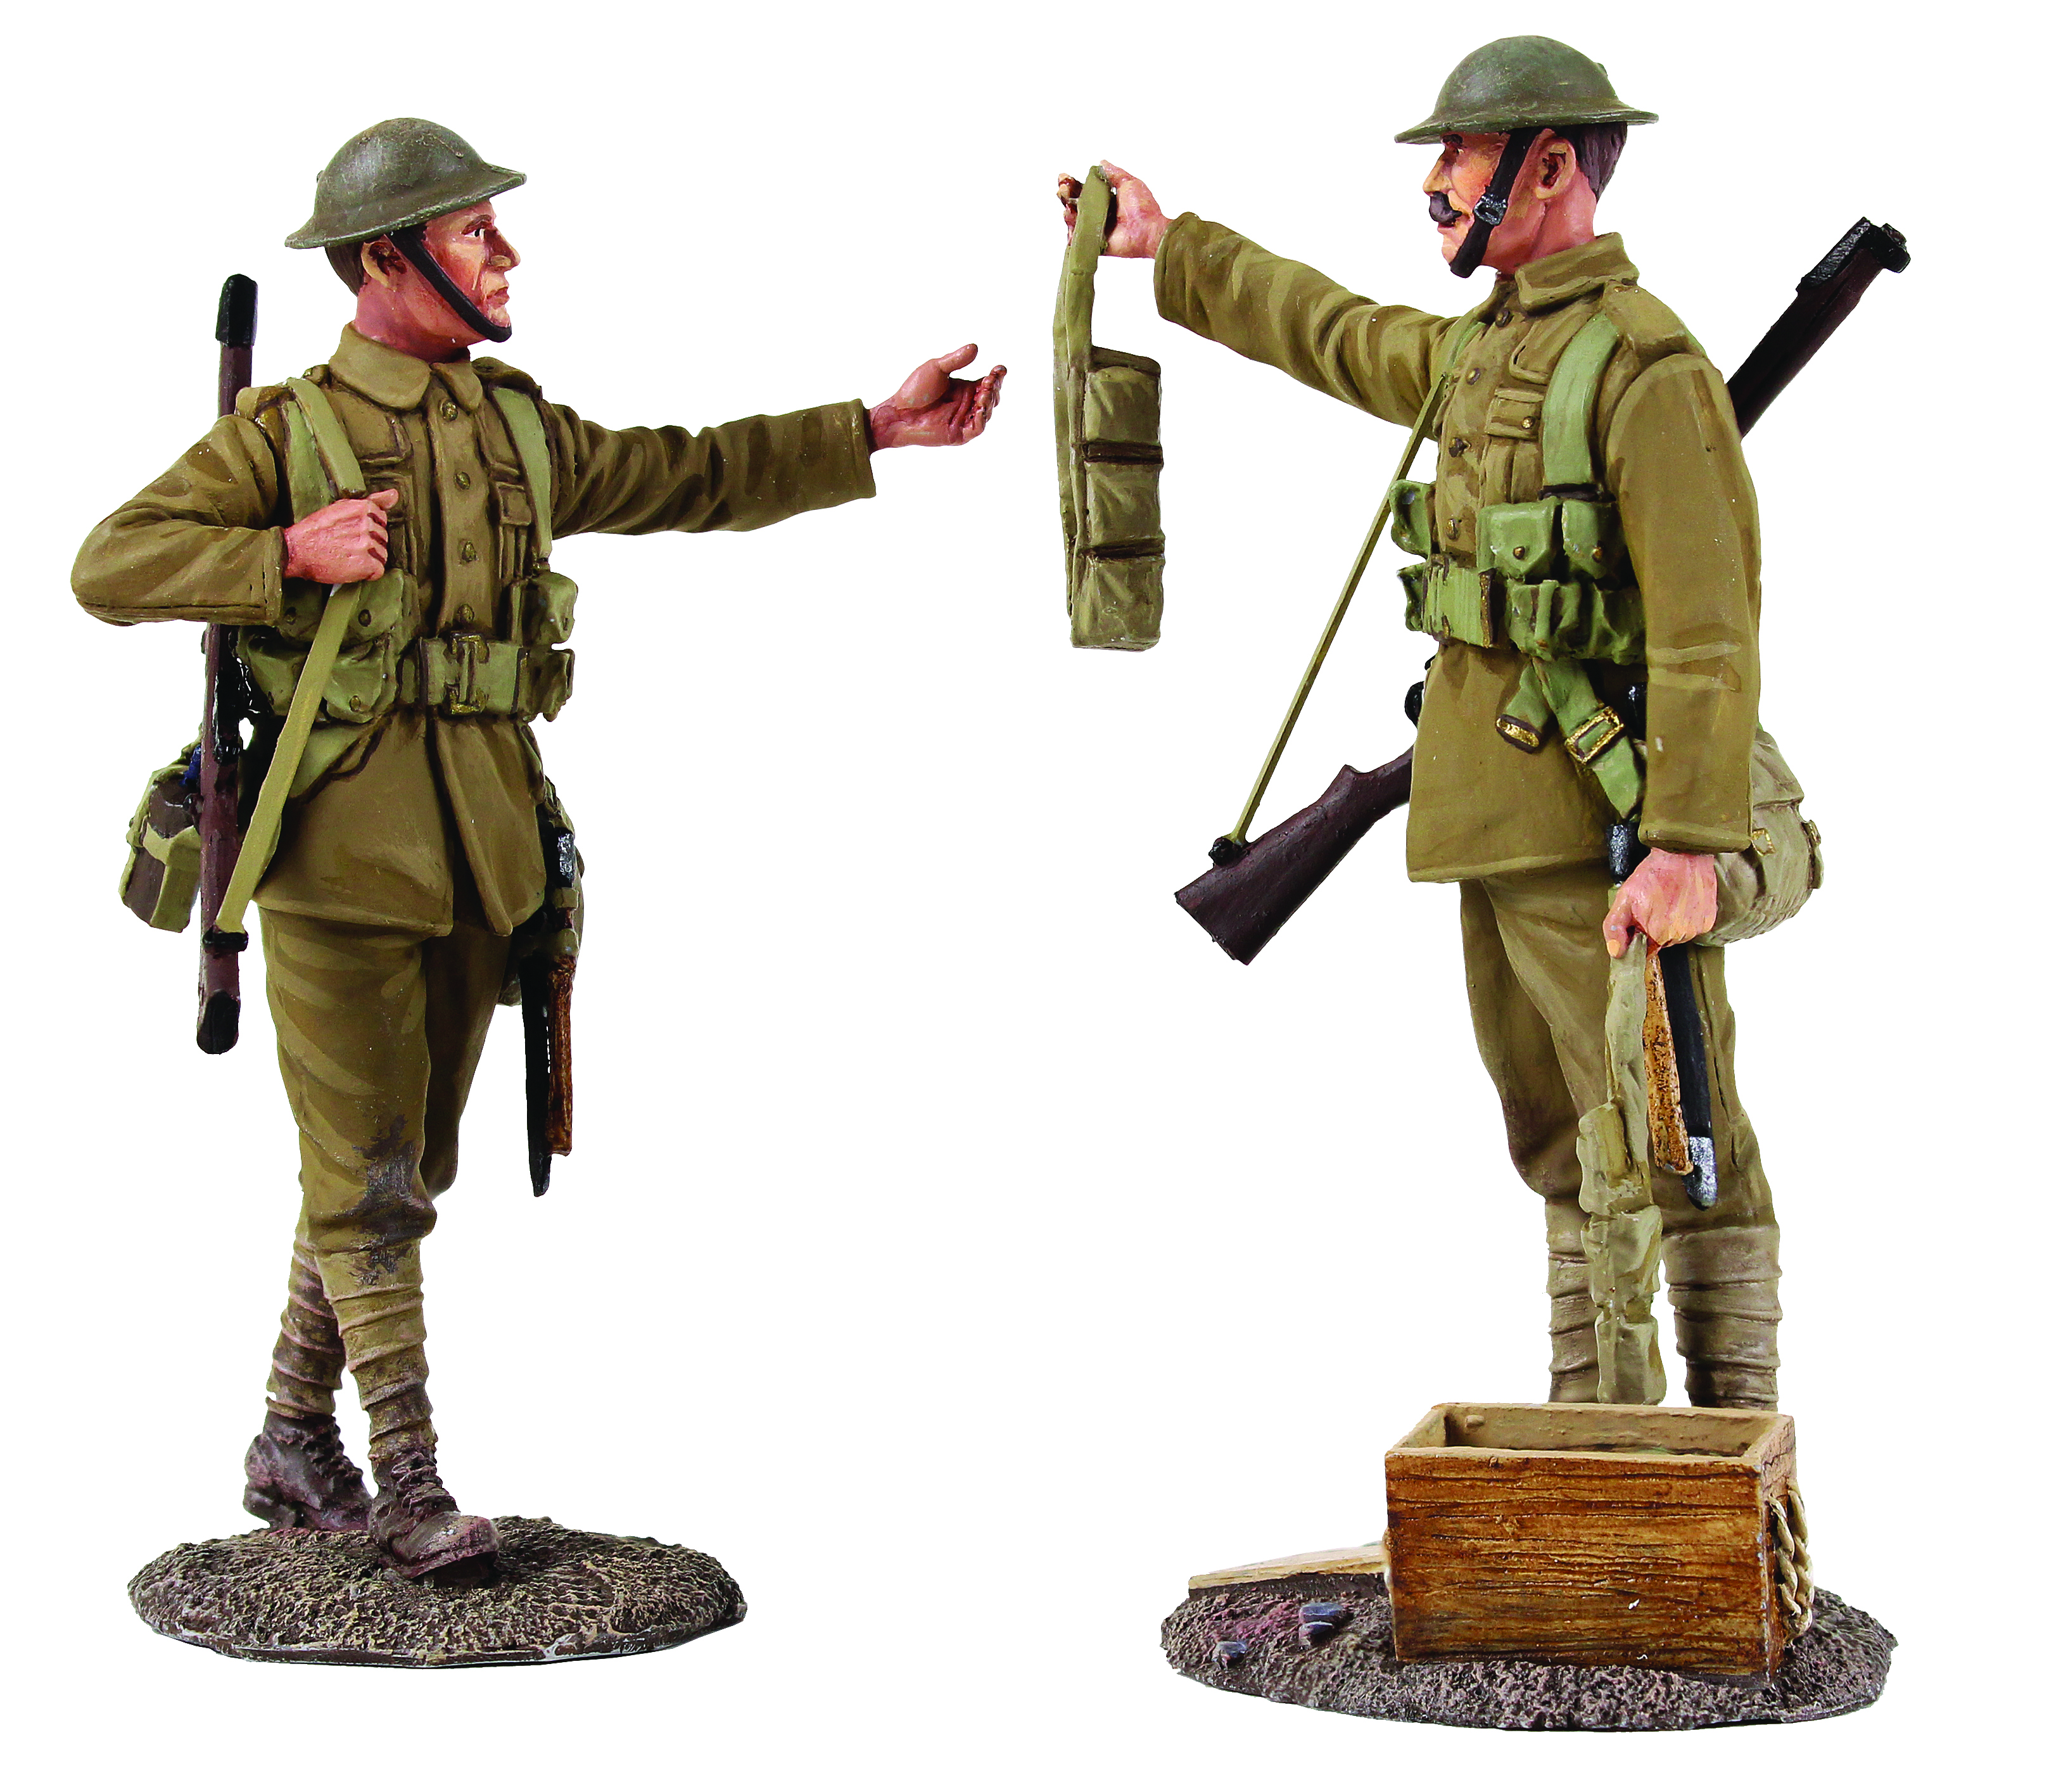 """""""Going Up The Line"""" British Infantry Handing Out Ammo, 1916-18 - 2 Piece set Limited Edition of 500 sets"""